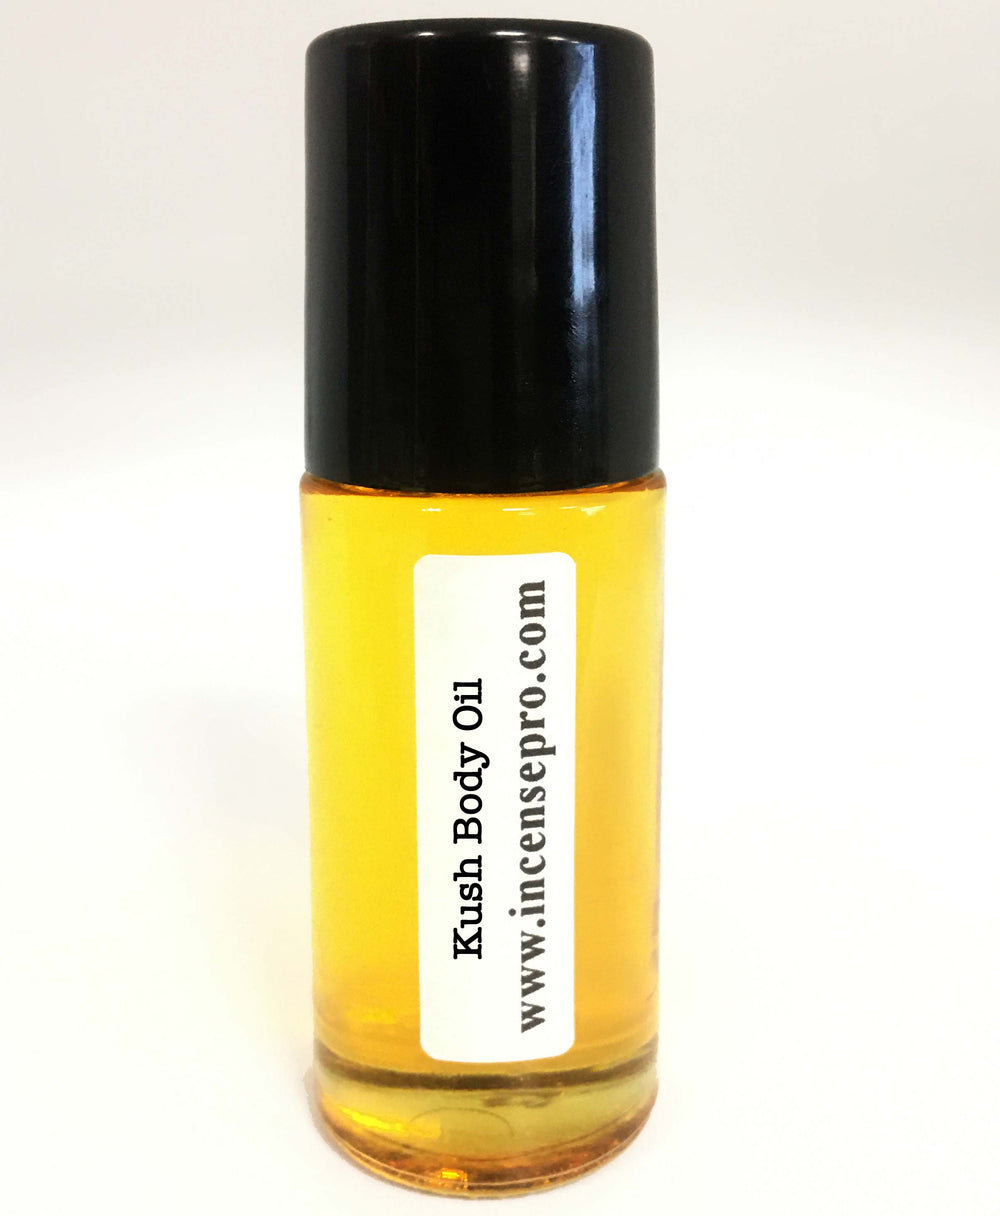 Buy Kush Body Oil (Unisex)